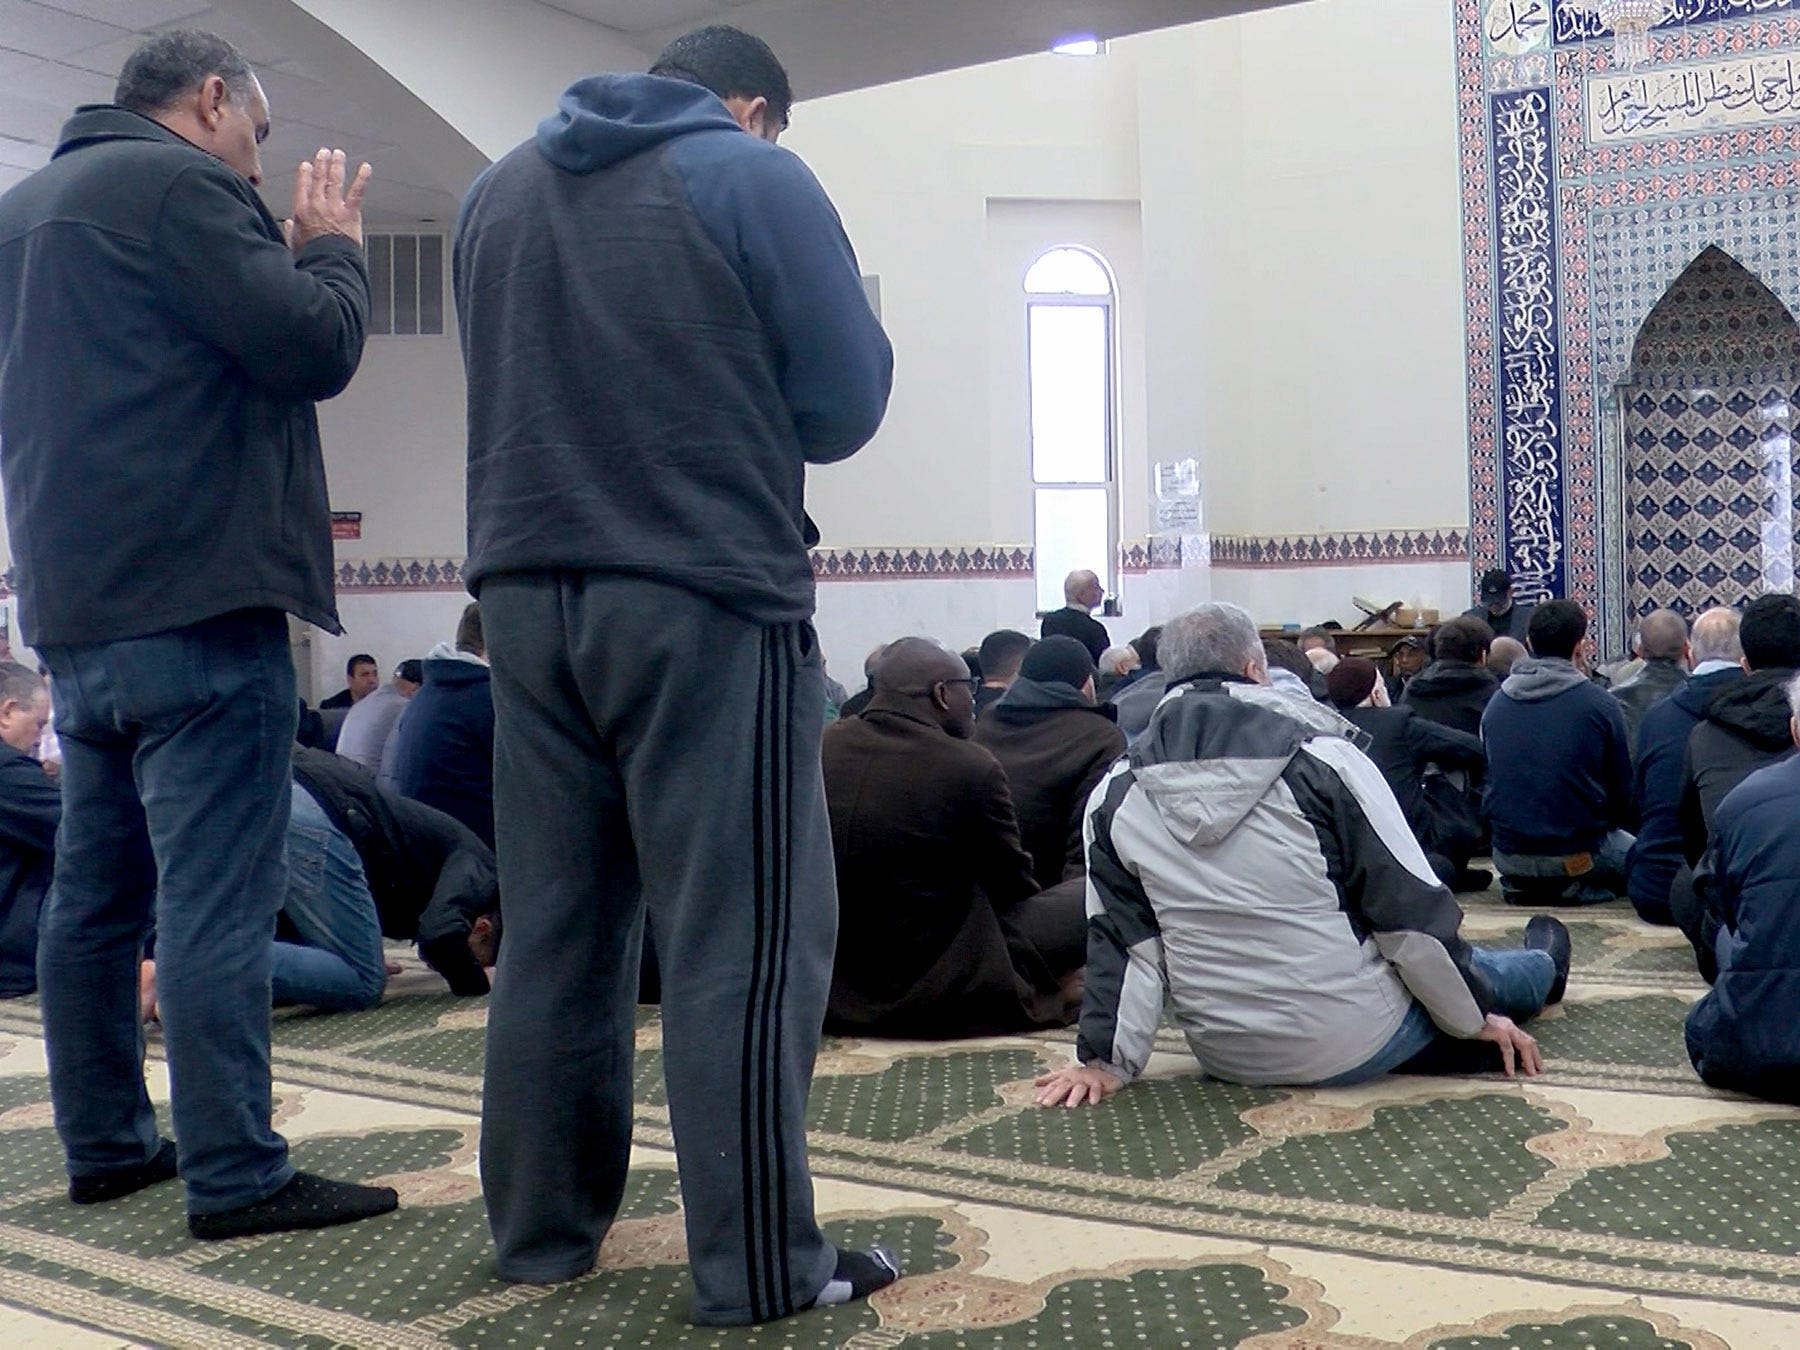 Men pray at Masjid Al-Aman in Middletown Friday, March 22, 2019.  Community members formed a ring around the mosque while the service went on inside.